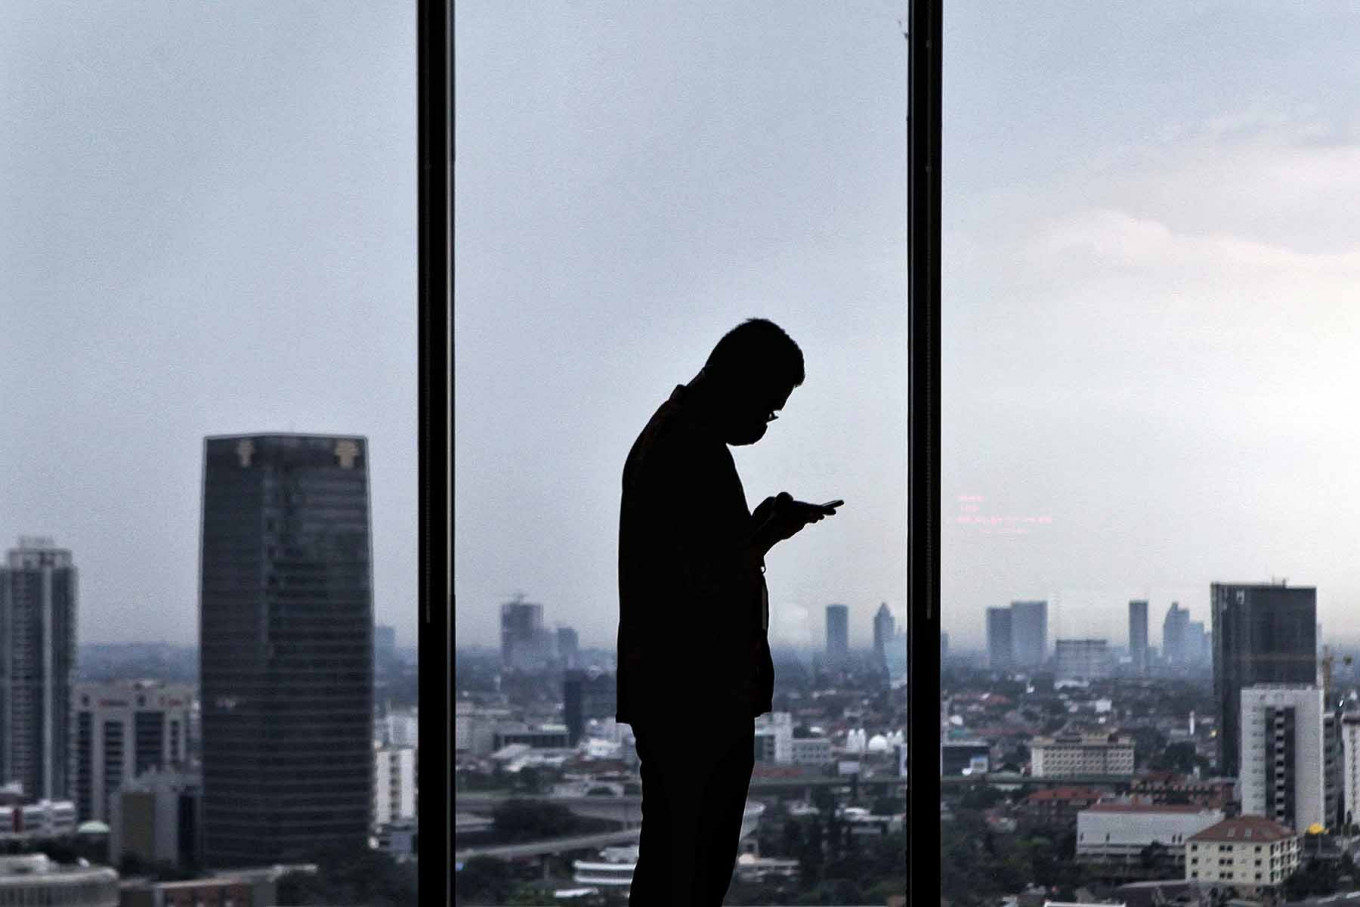 A Muamalat Bank employee uses his smartphone at work at the Muamalat Tower in Jakarta on Sept. 22. Finance Minister Sri Mulyani projects that Indonesia's economy will contract between 0.6 to 1.7 percent this year due to the COVID-19 pandemic. JP/Seto Wardhana.